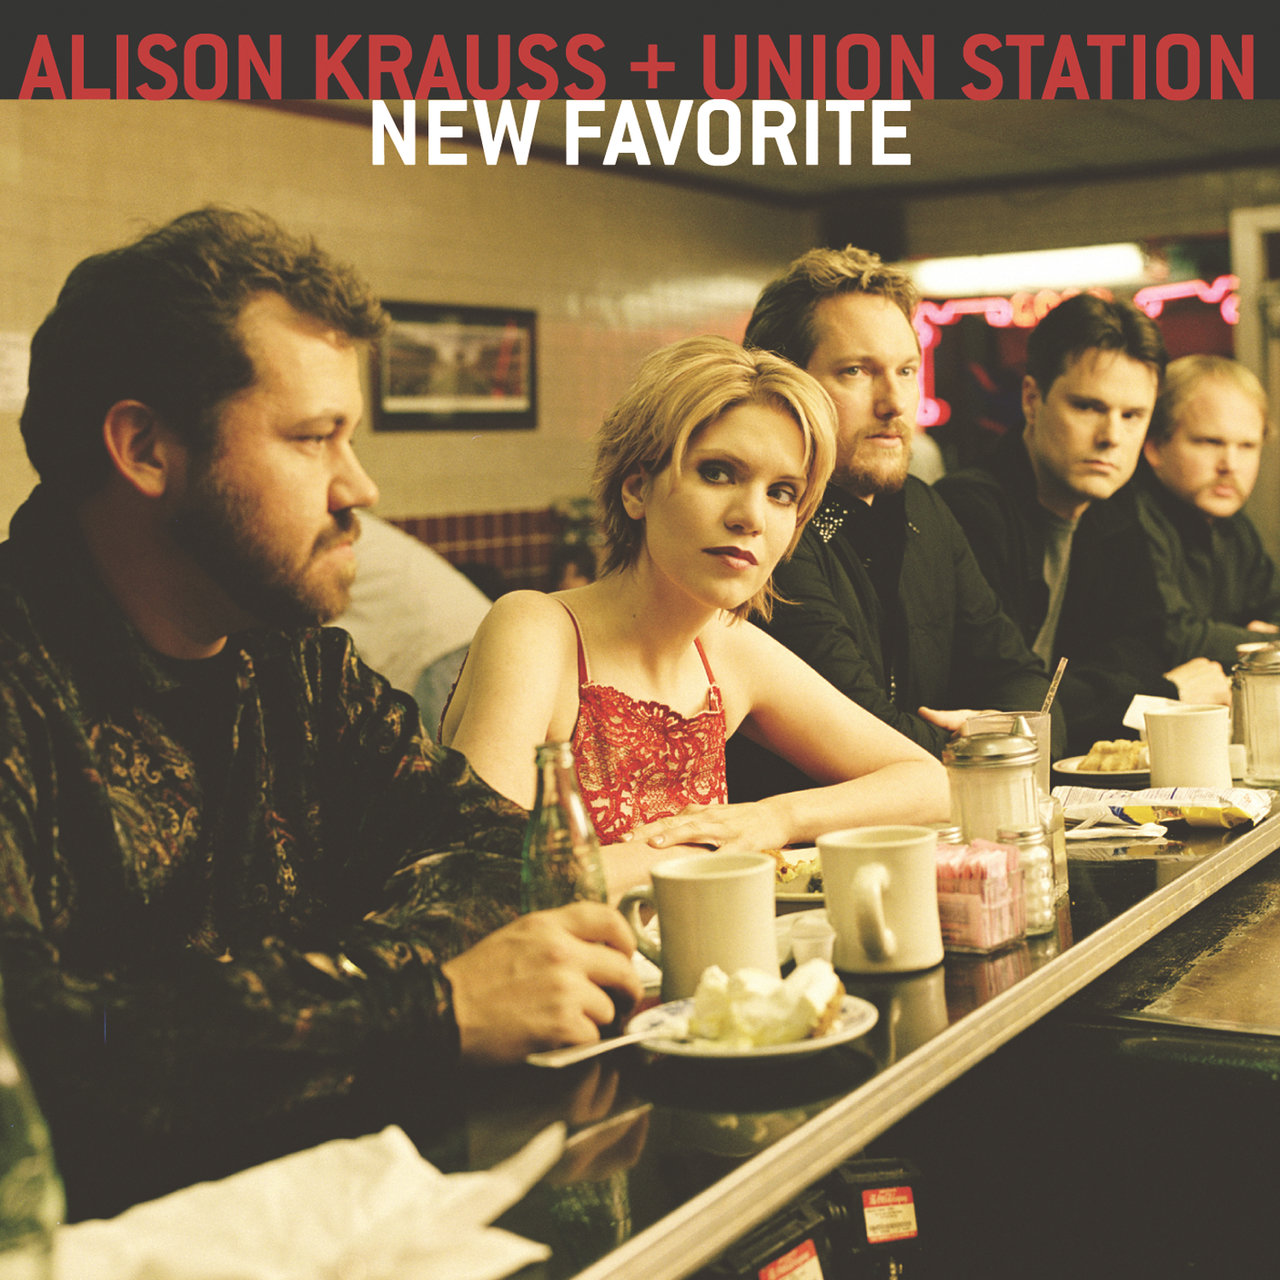 Alison Krauss And Union Station New Favorite